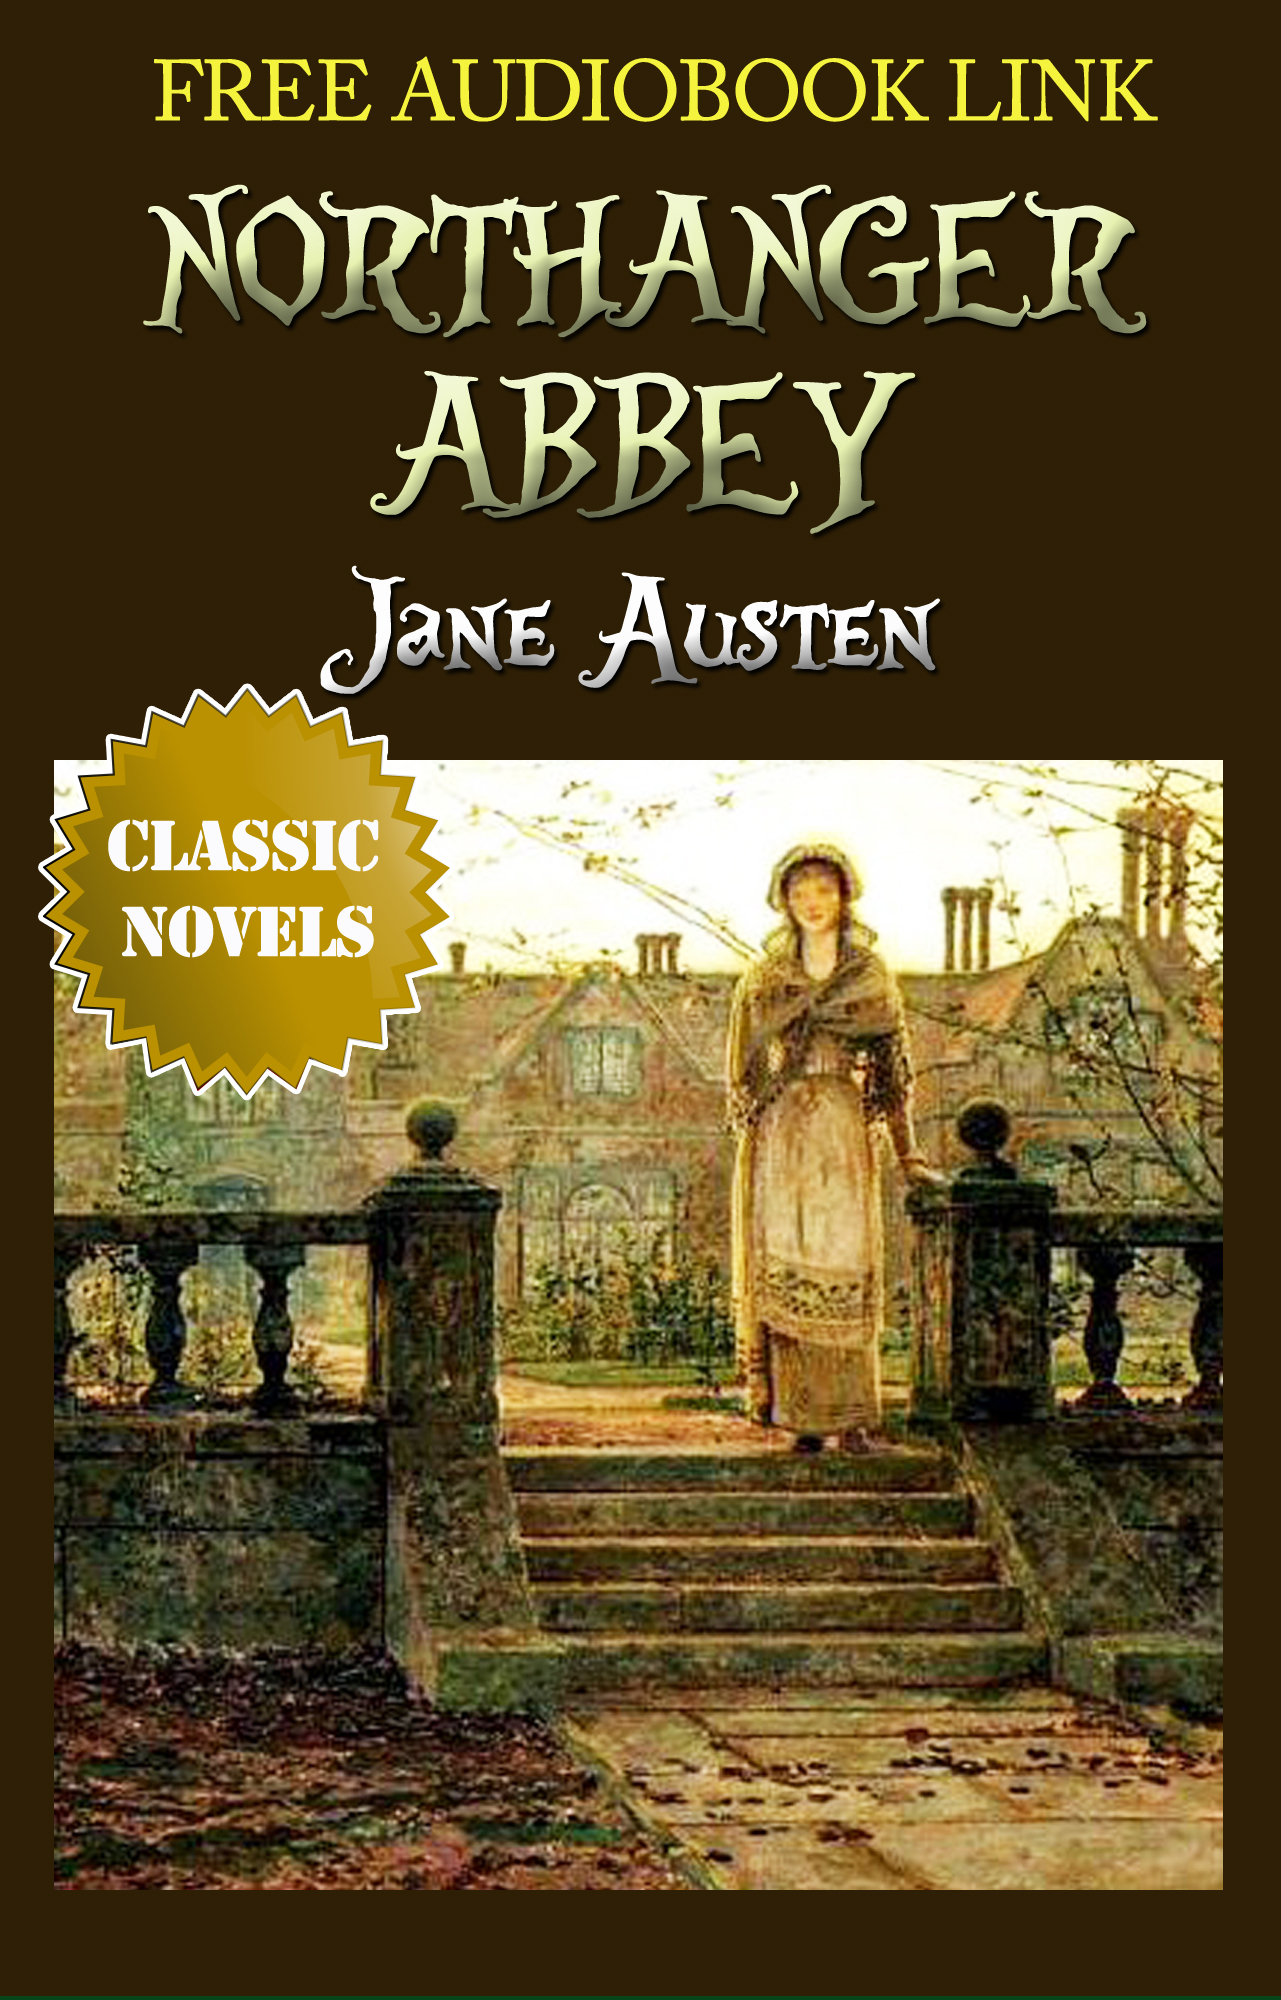 Jane Austen - NORTHANGER ABBEY Classic Novels: New Illustrated [Free Audiobook Links]